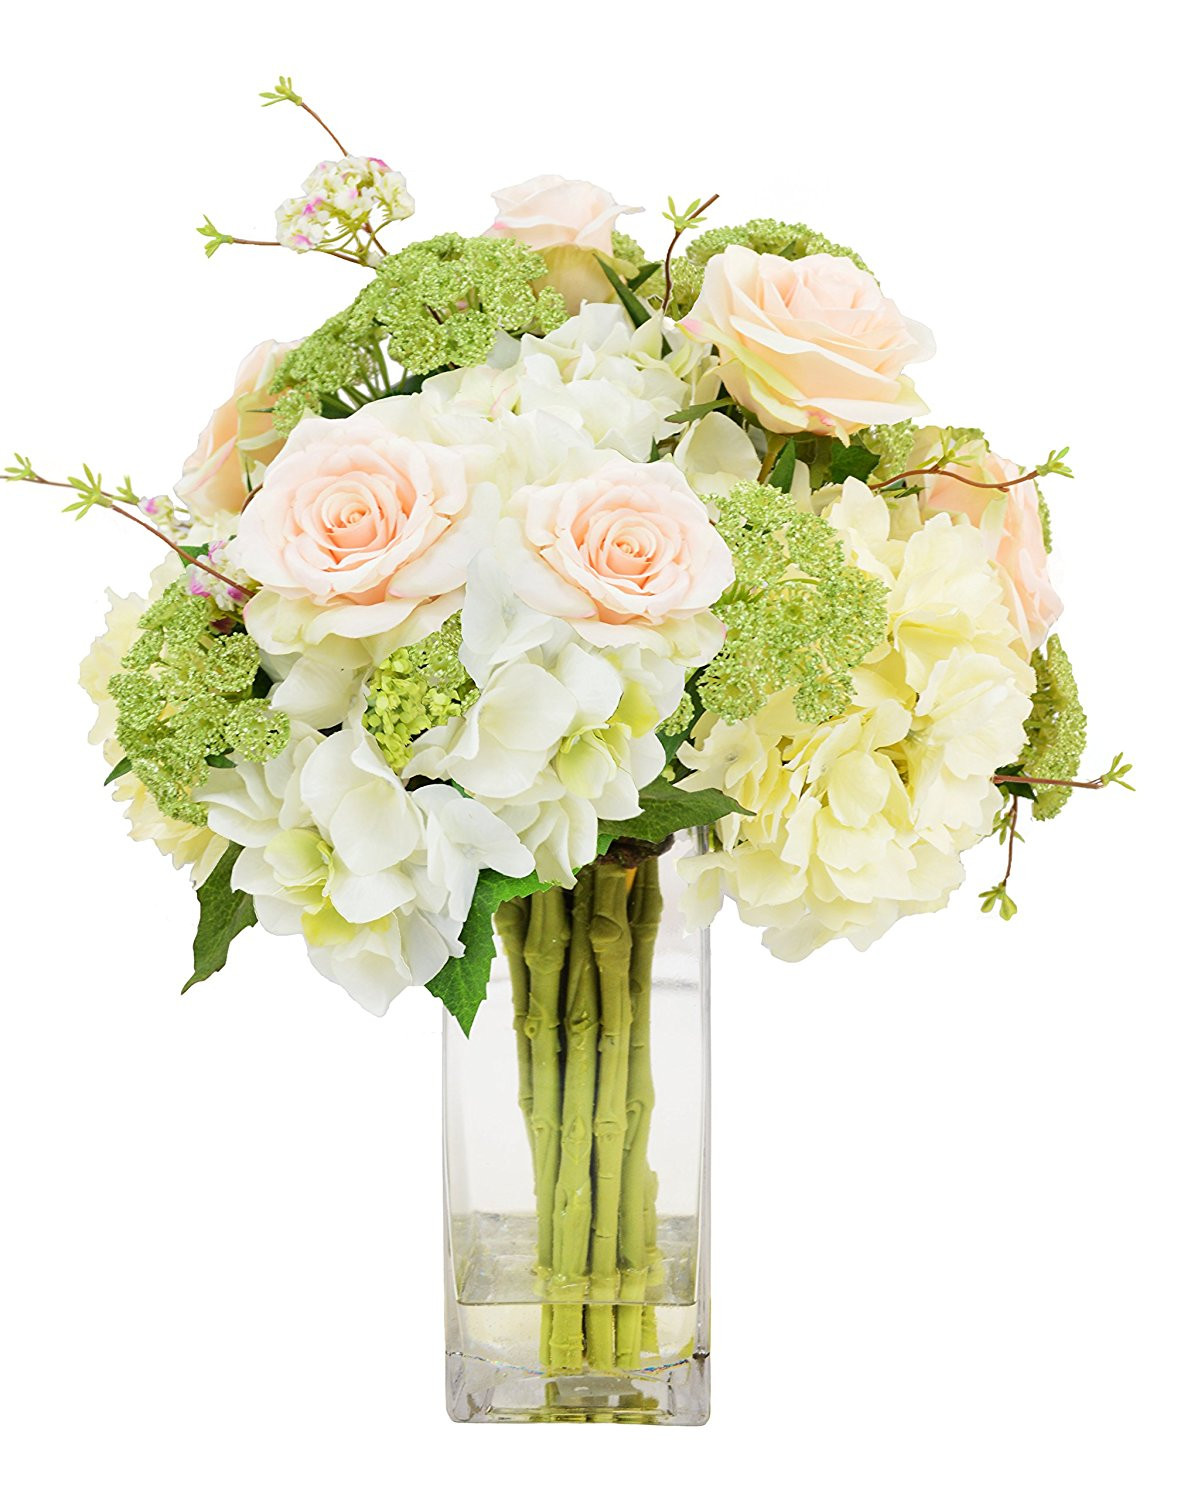 6 inch square glass vase of cheap tall square water glass cups find tall square water glass intended for get quotations a· creative displays cream hydrangeas green queen anns lace soft peach roses green budding